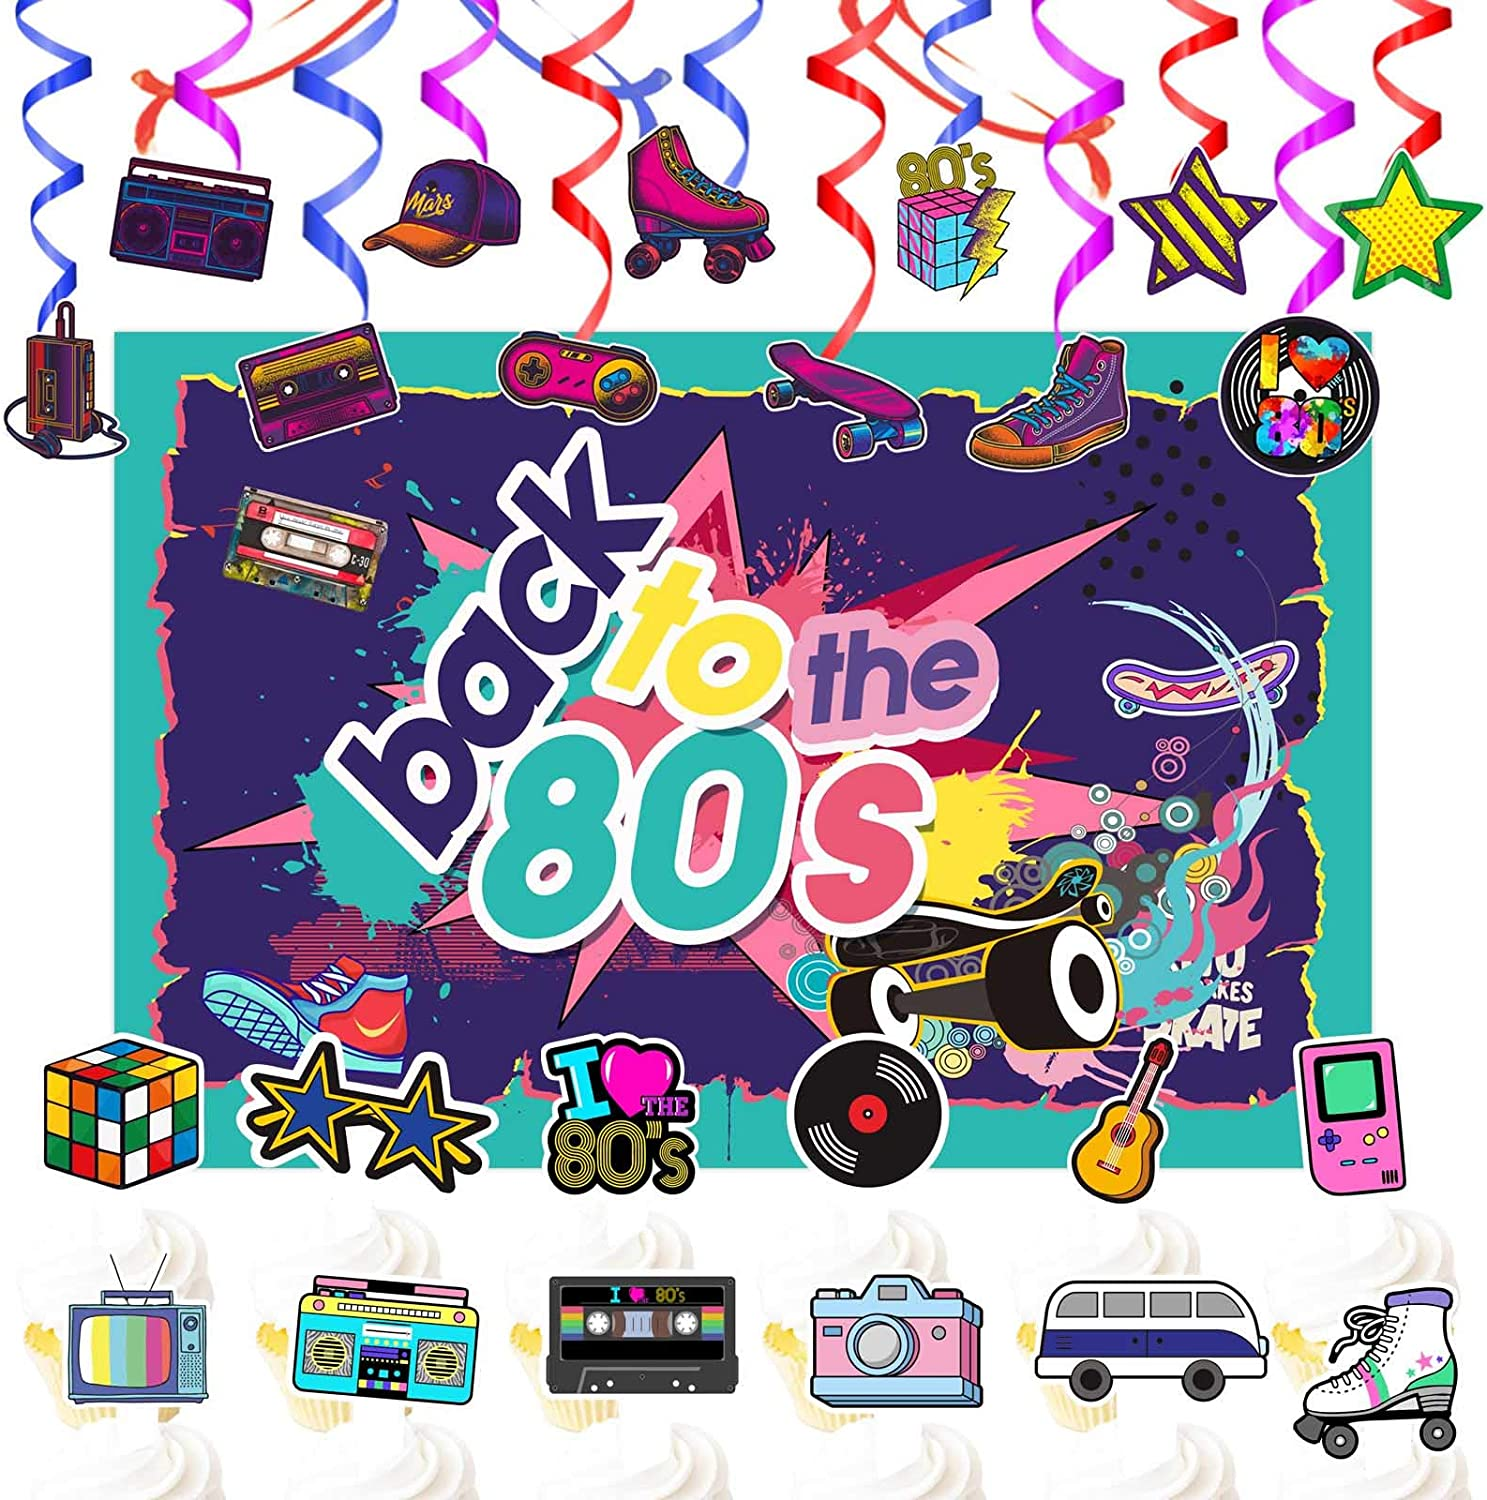 wongmode Back to The 80/'s Party Decorations Set Totally 1980s Theme Swirls Streamers Garland Backdrop and Cupcake Topper Party Supplies